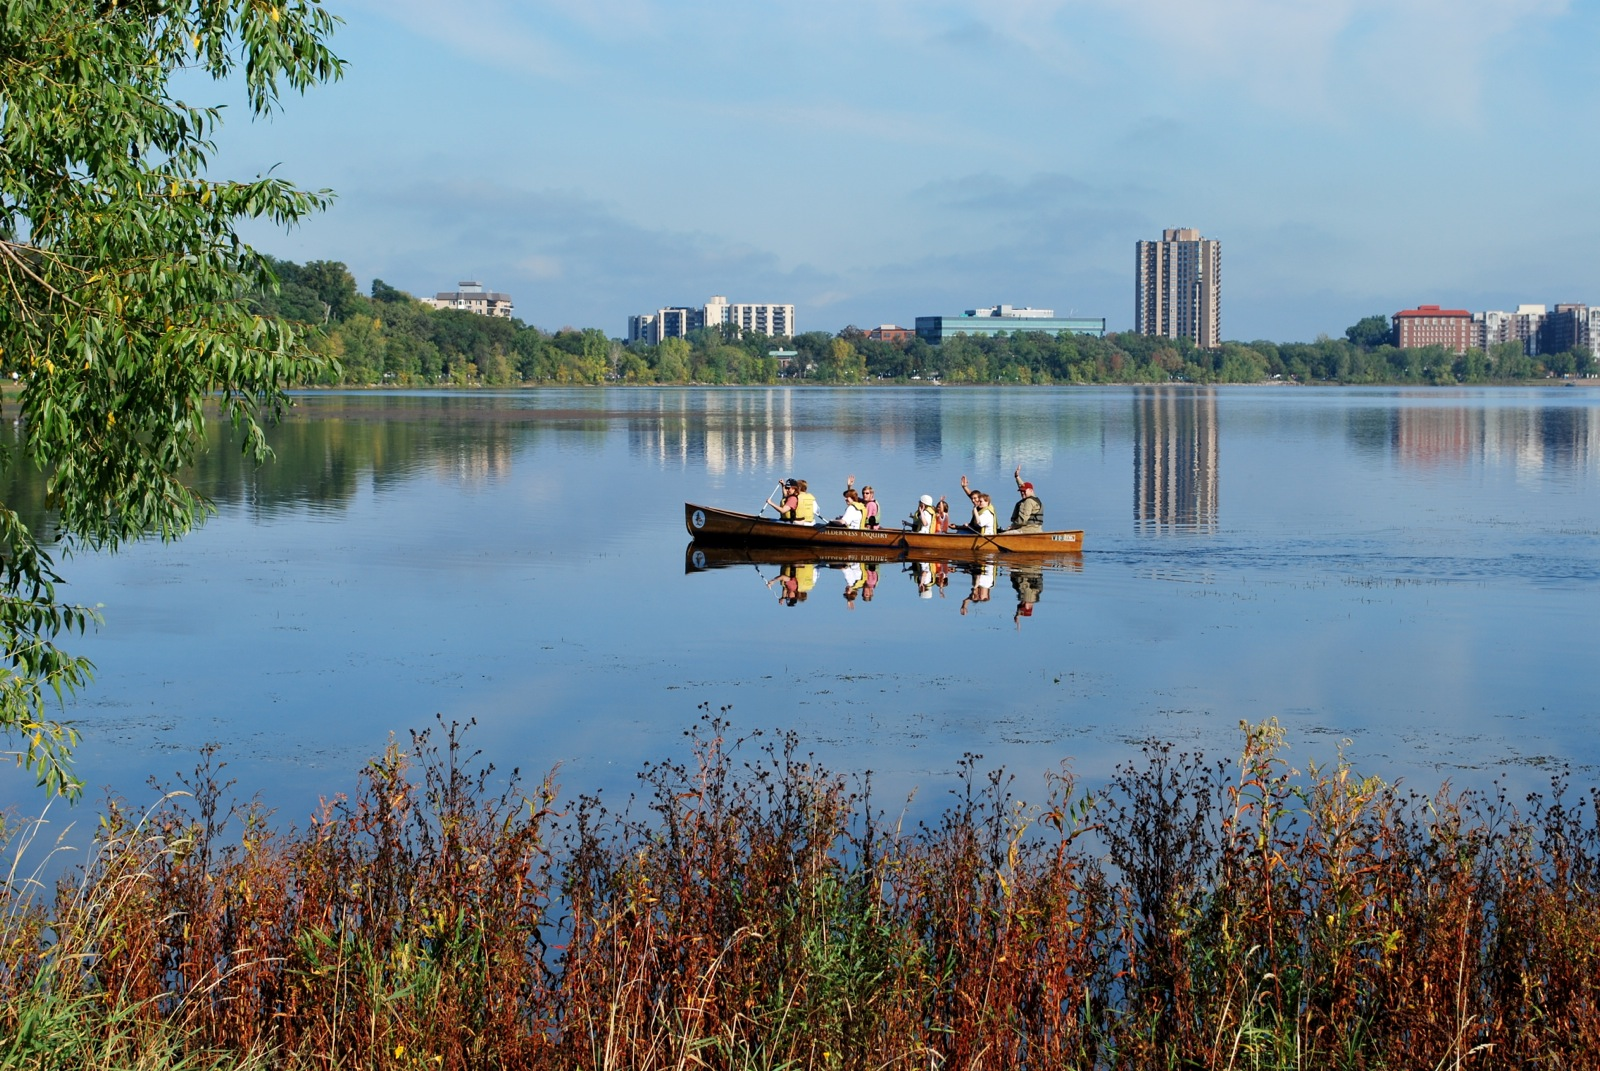 Participants wave from their Voyageur canoe as they paddle across glassy water in the Chain of Lakes.